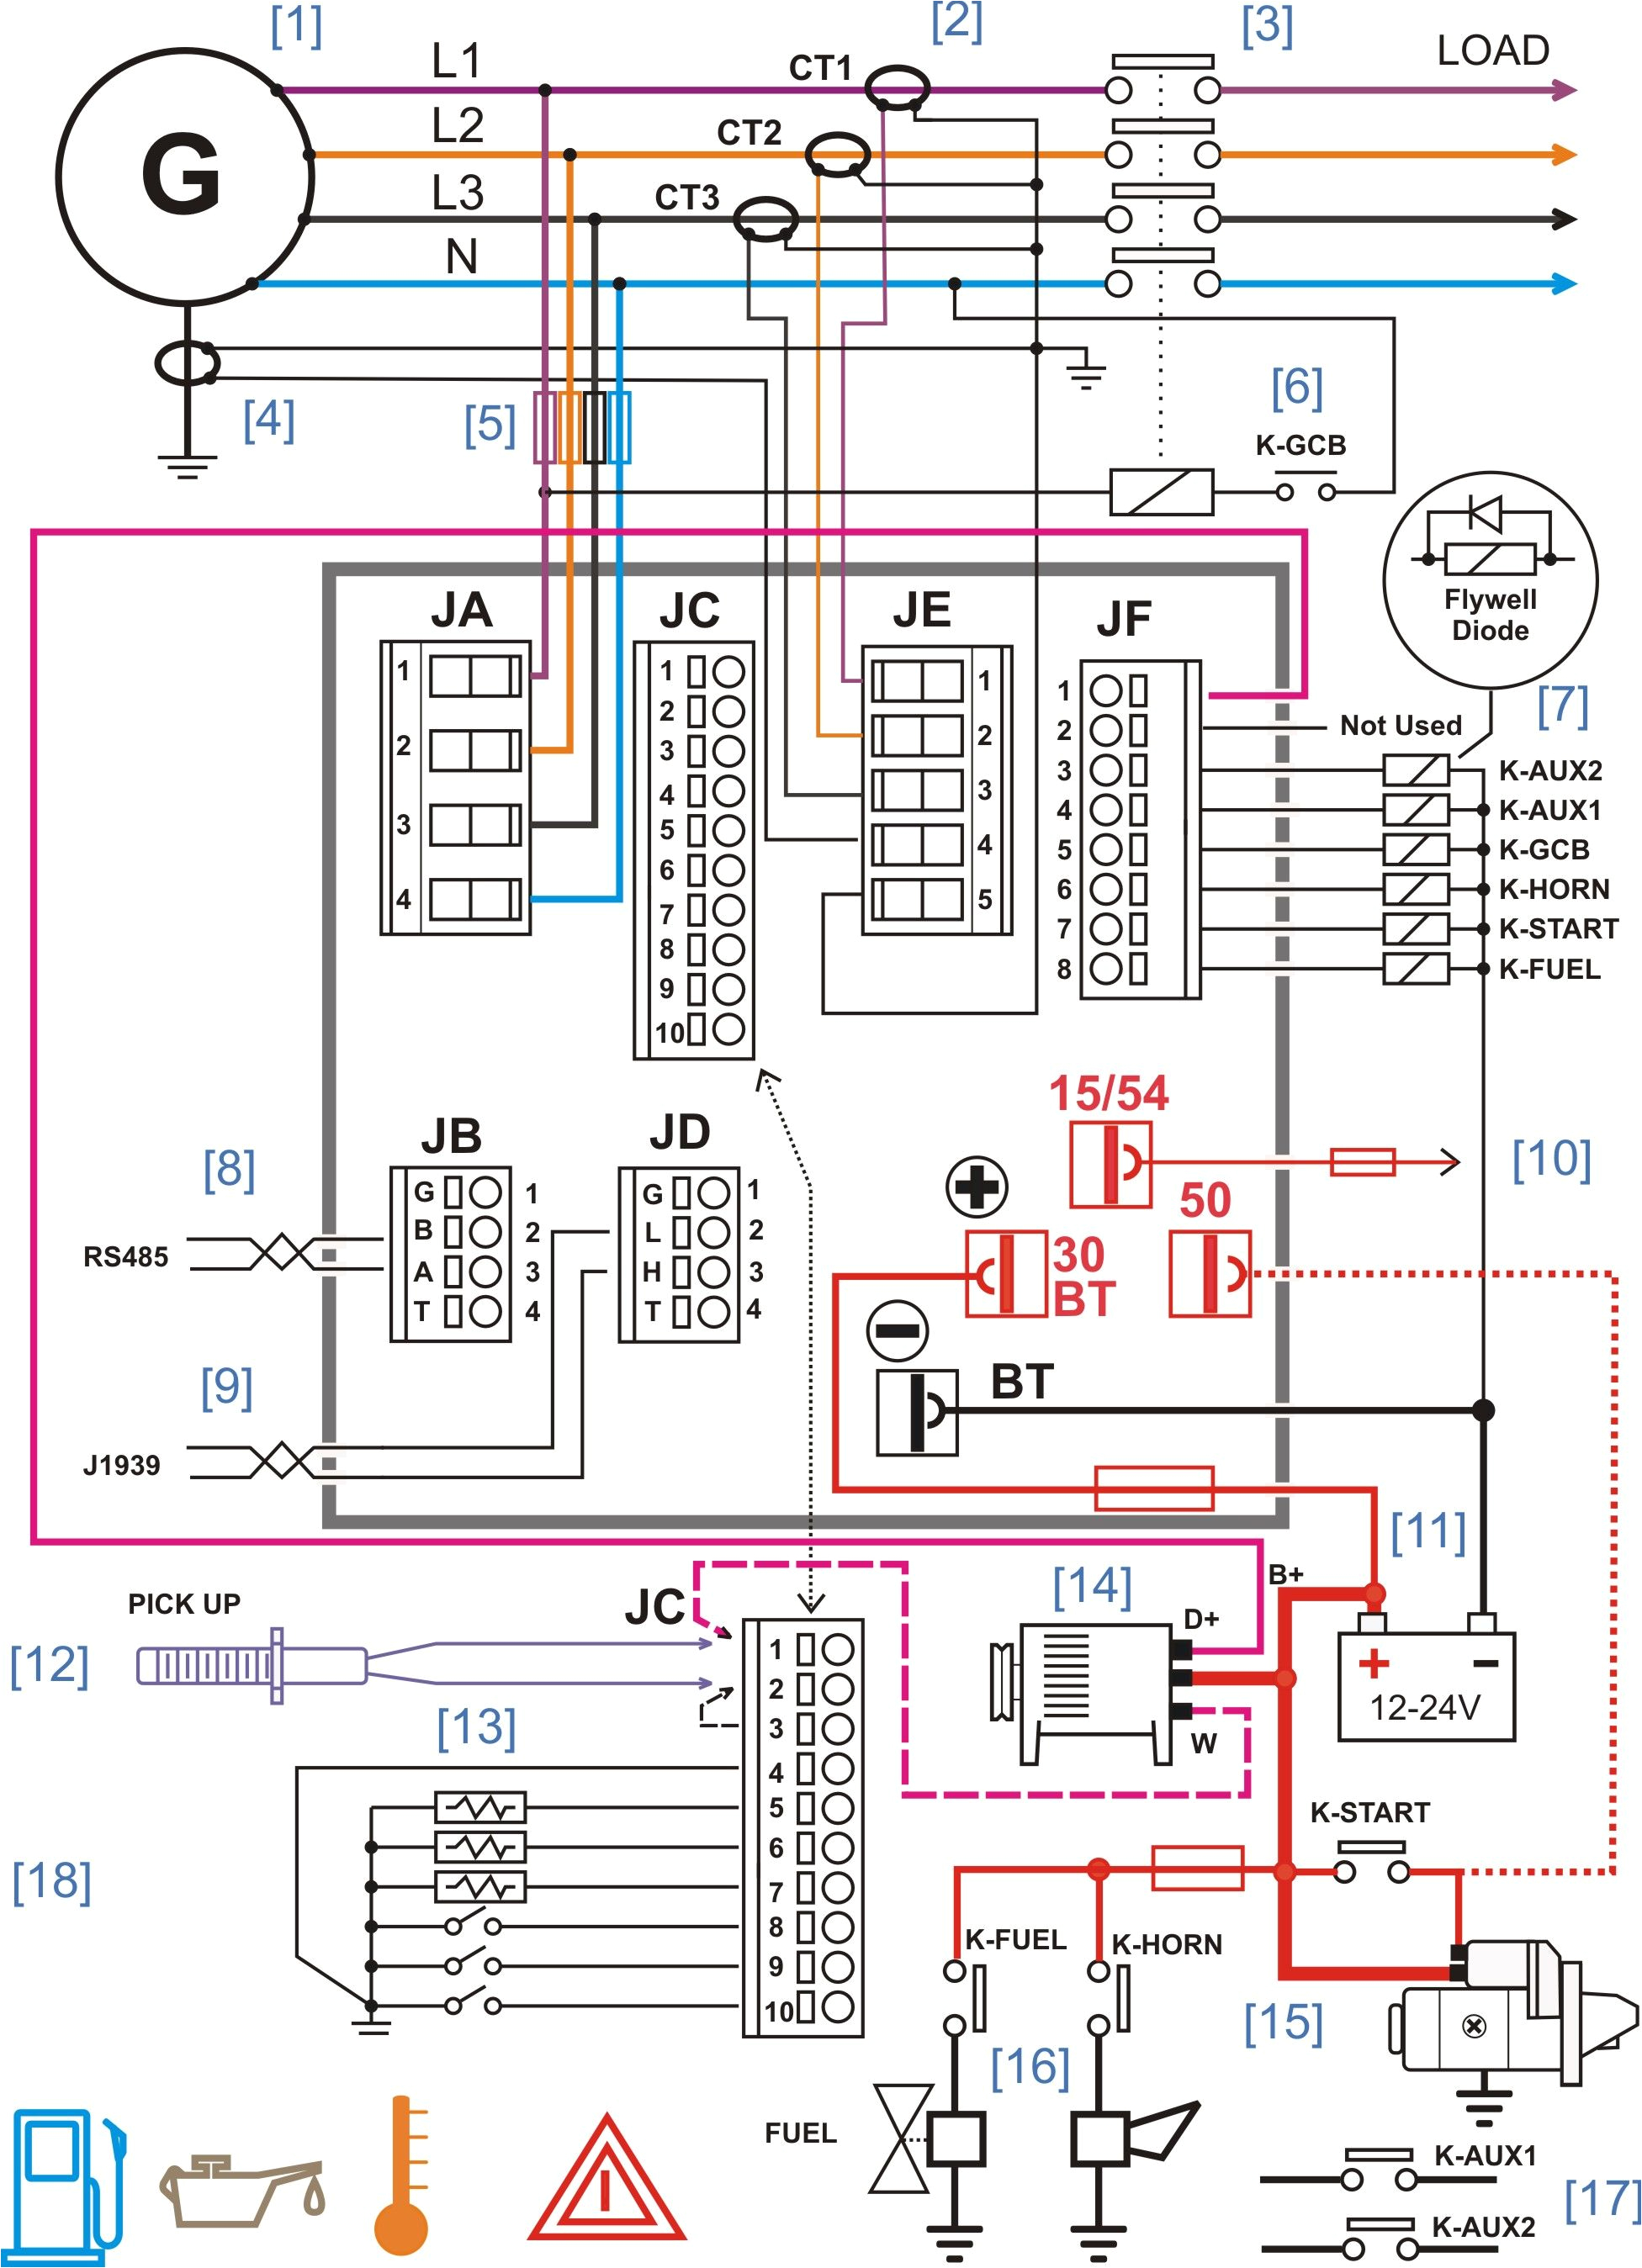 simplex wiring diagram of fire wiring diagram fascinating simplex 2001 fire panel wiring diagram simplex fire alarm wiring diagrams